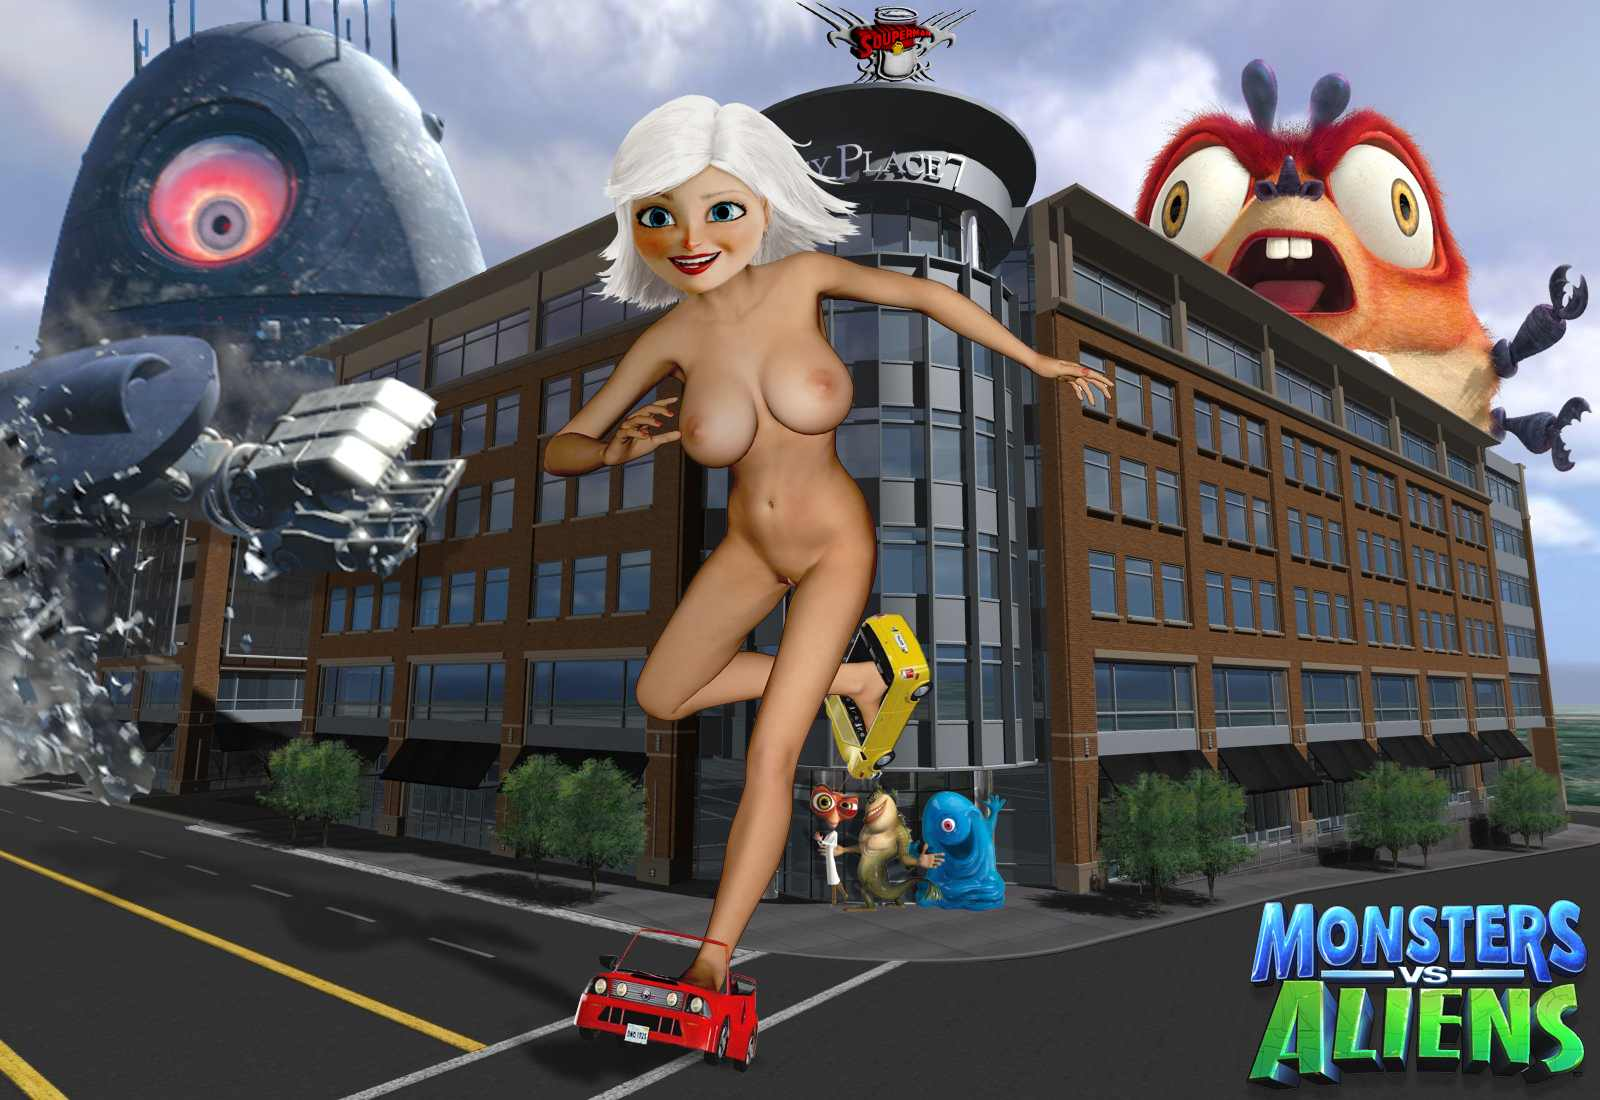 Monsters vs aliens erotic sexy comic